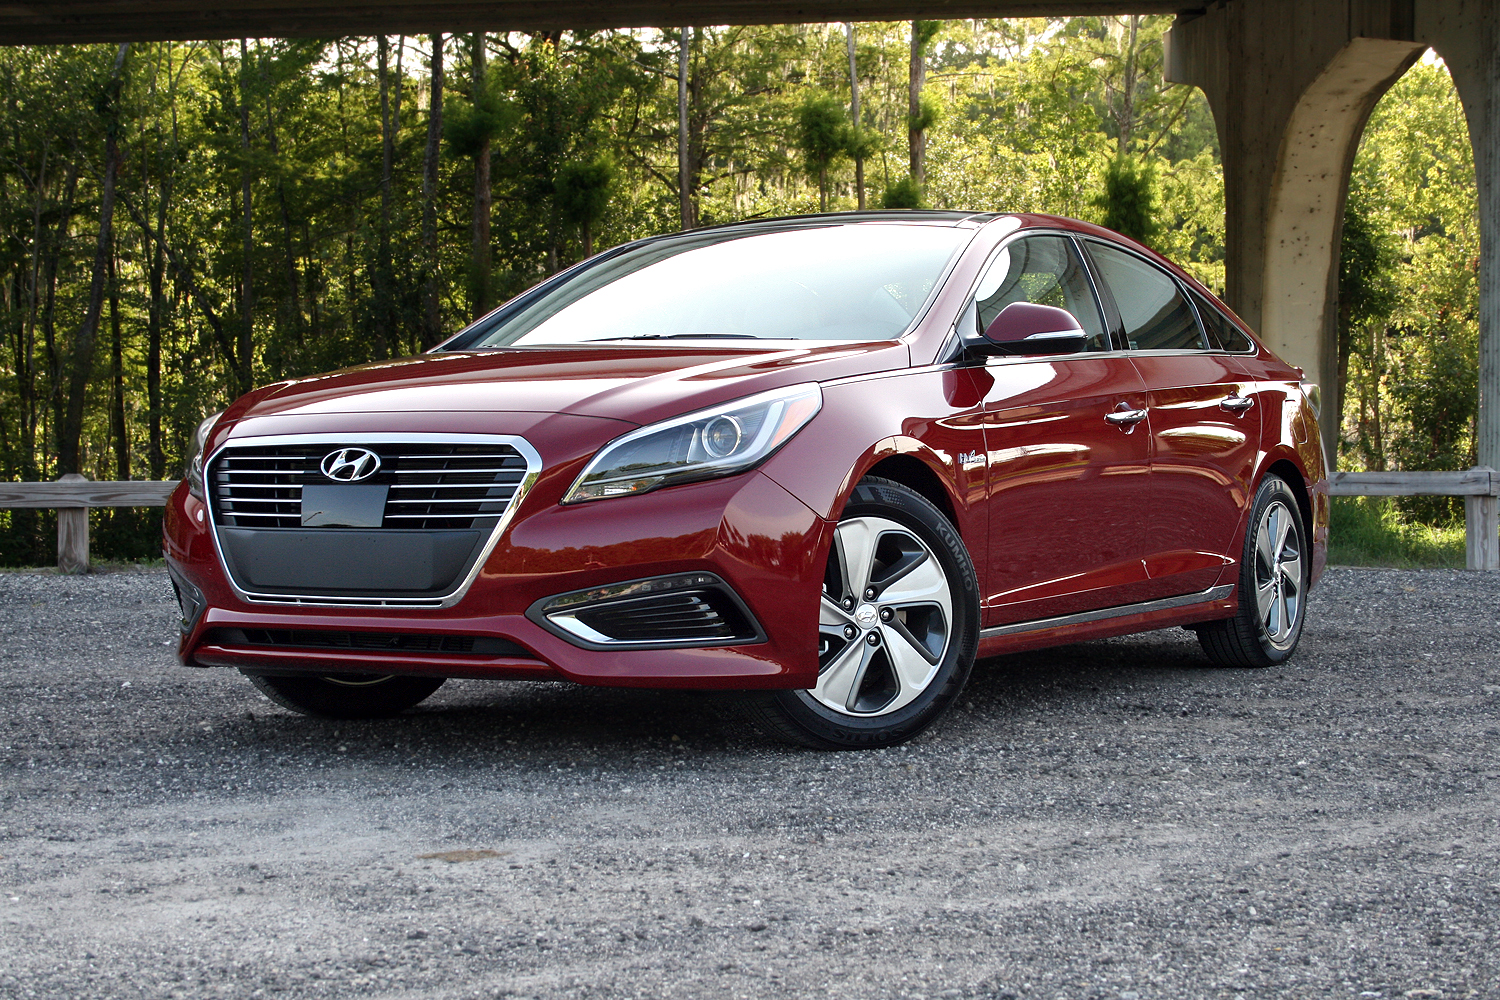 2016 hyundai sonata hybrid driven review top speed. Black Bedroom Furniture Sets. Home Design Ideas